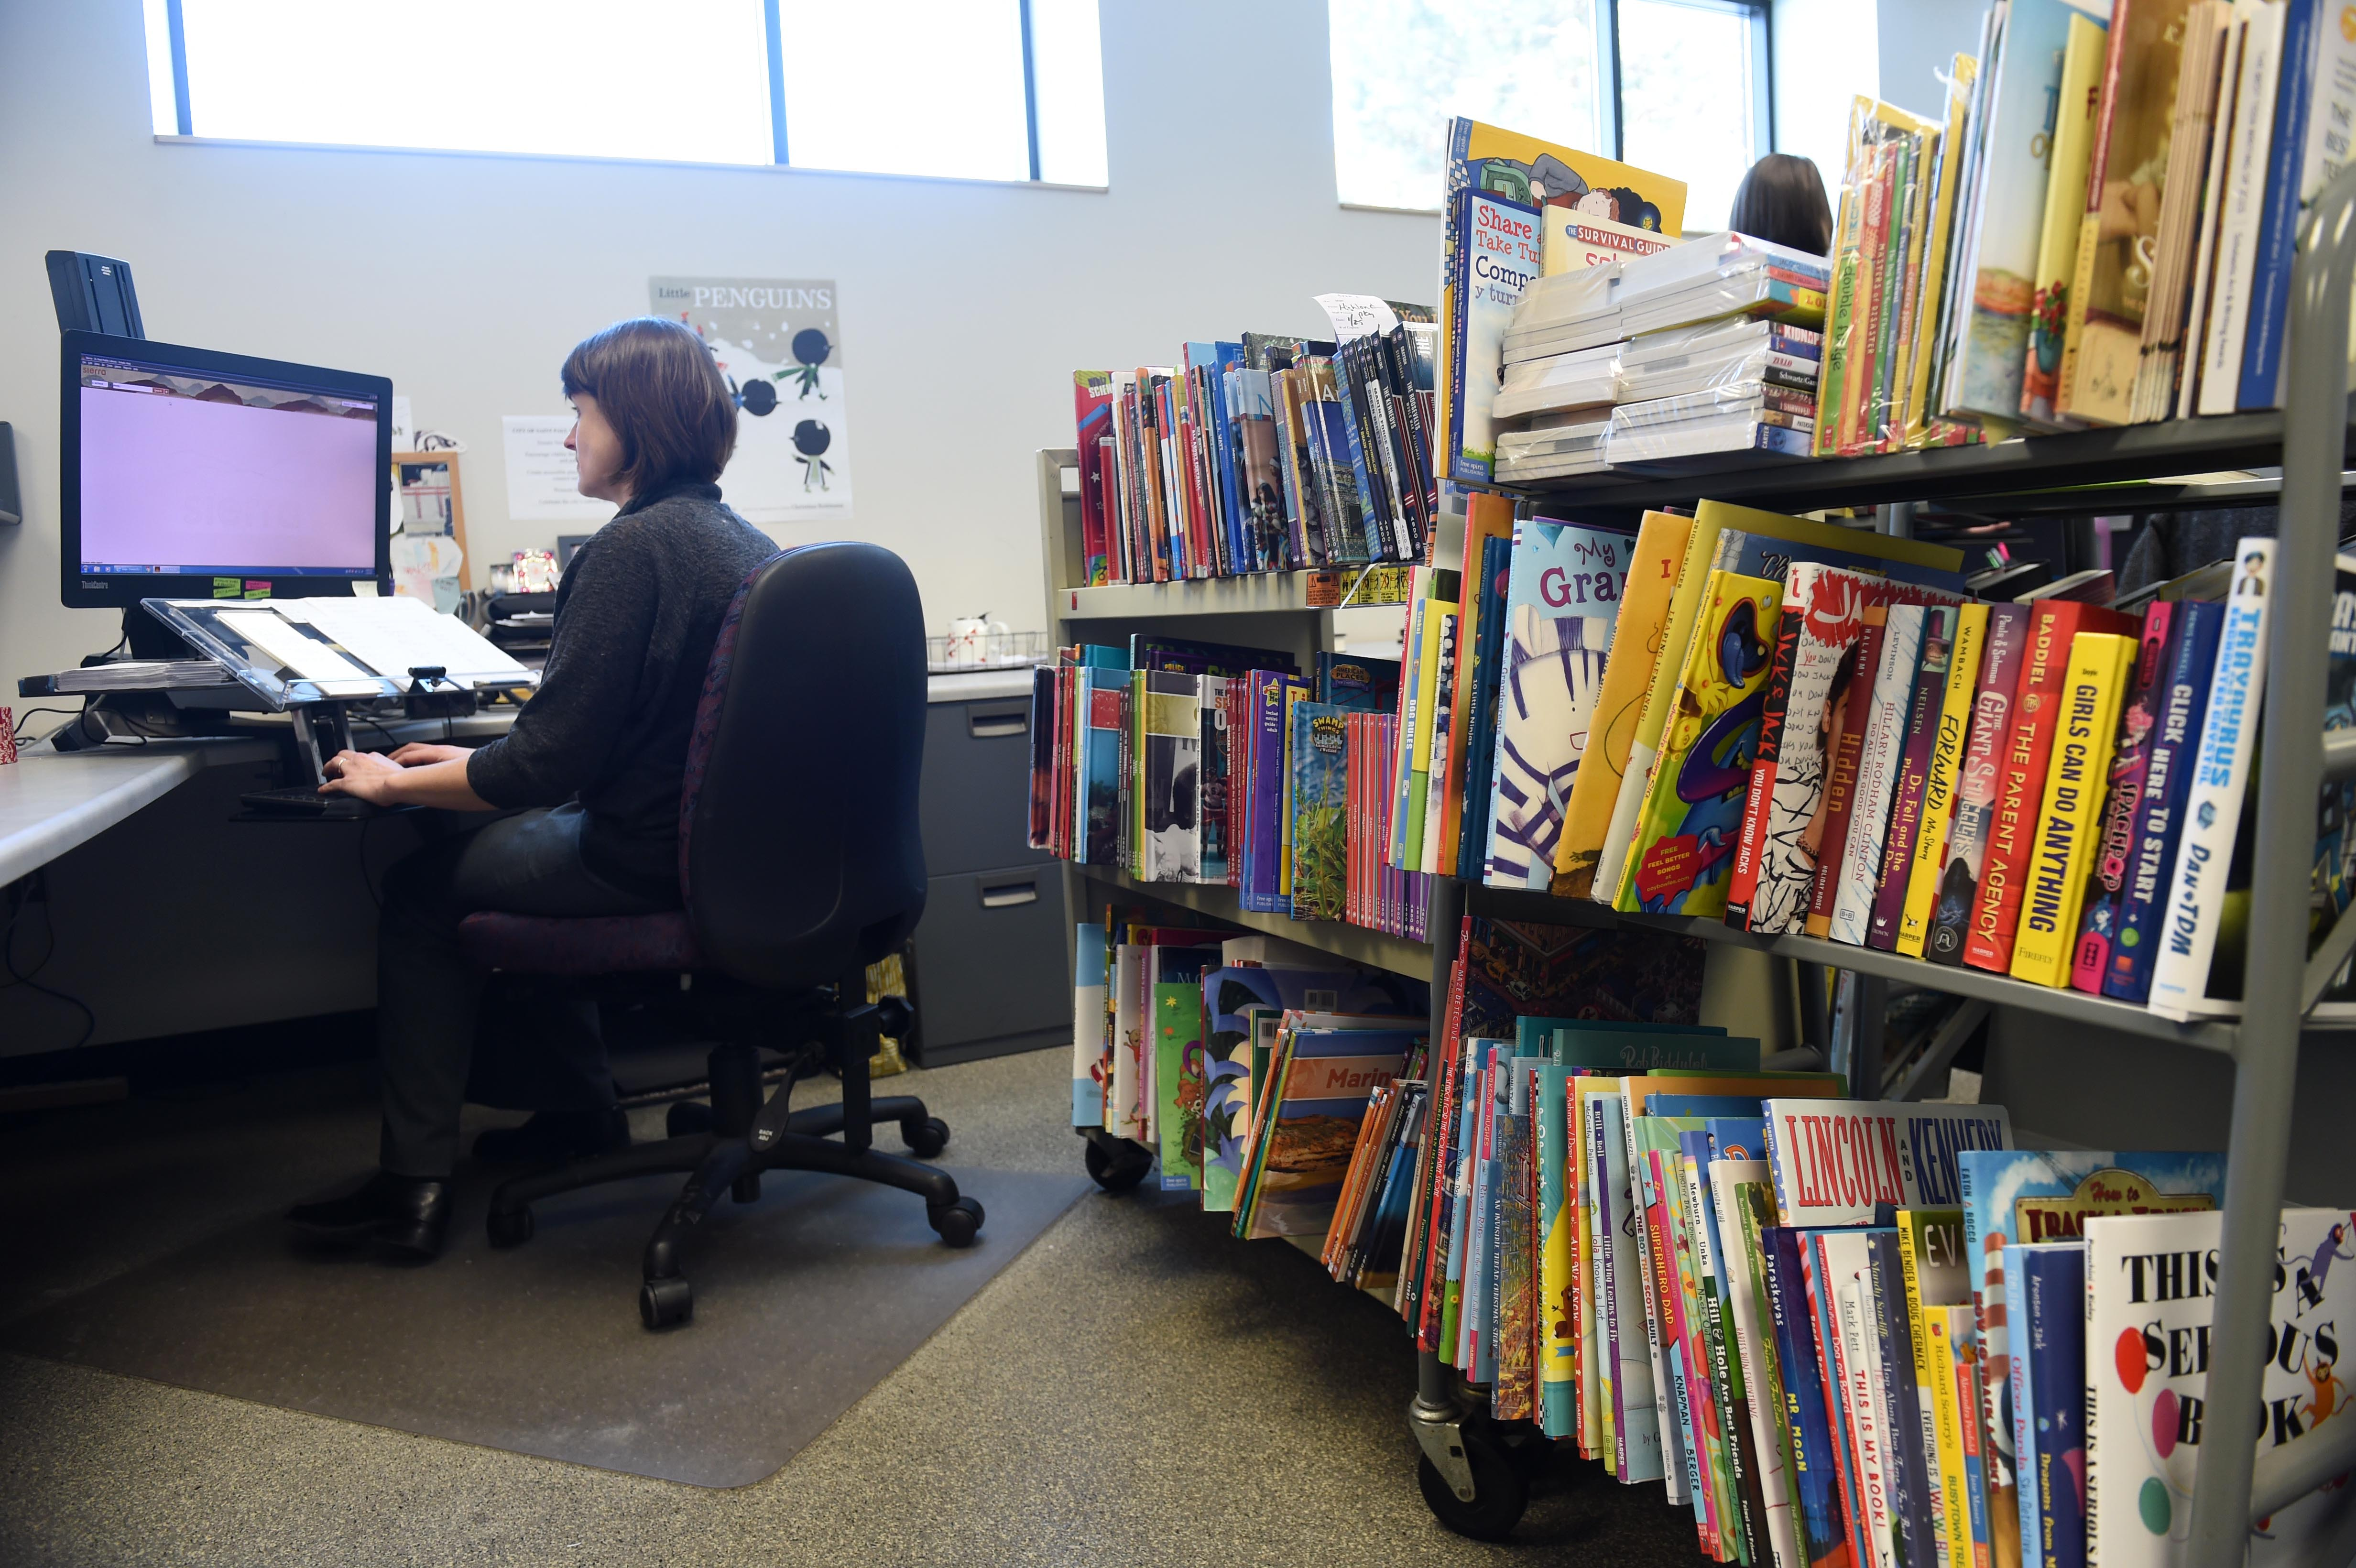 This Woman Figures Out Which Books To Put On Public Library Shelves